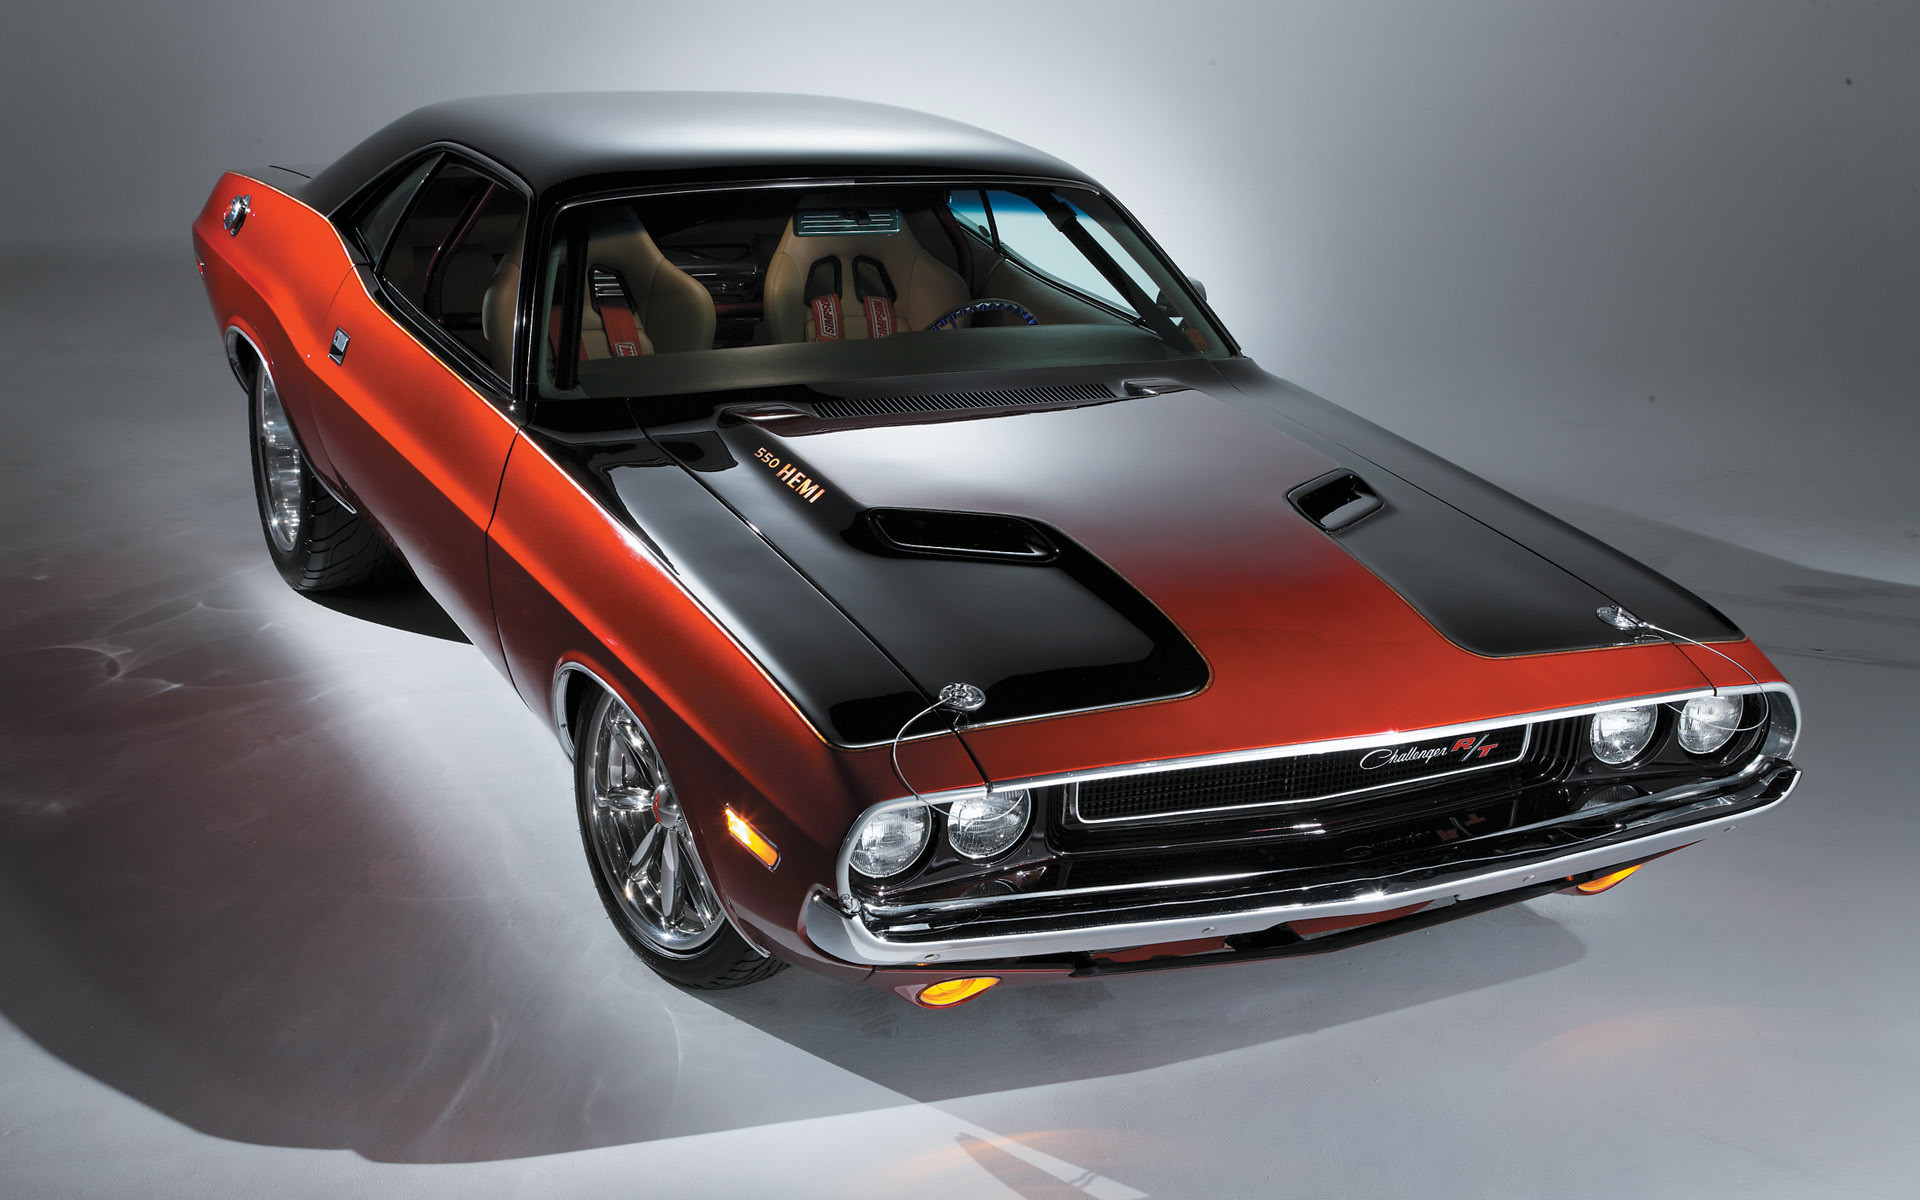 1000 Images About 1970 Challenger On Pinterest Dean Ogorman Auction And  Vintage